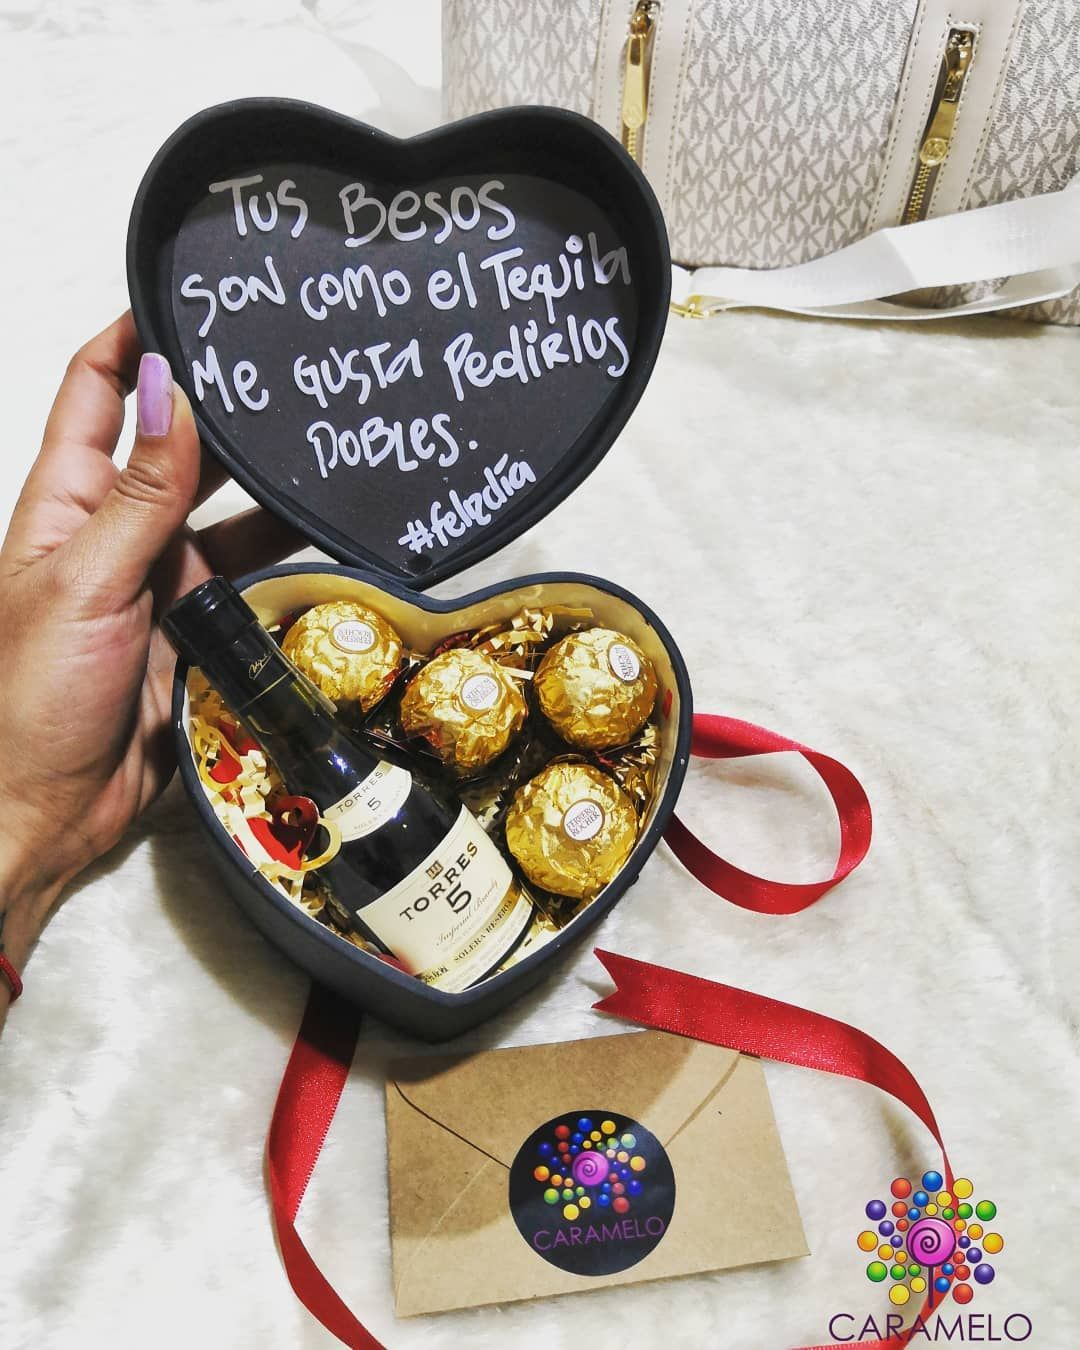 Tus Besos Son Como El Tequila Me Gusta Pedirlos Dobles Carameloarreglos Giftbox Loveit Originalbox Heart Candy Chocolate Box Chocolate